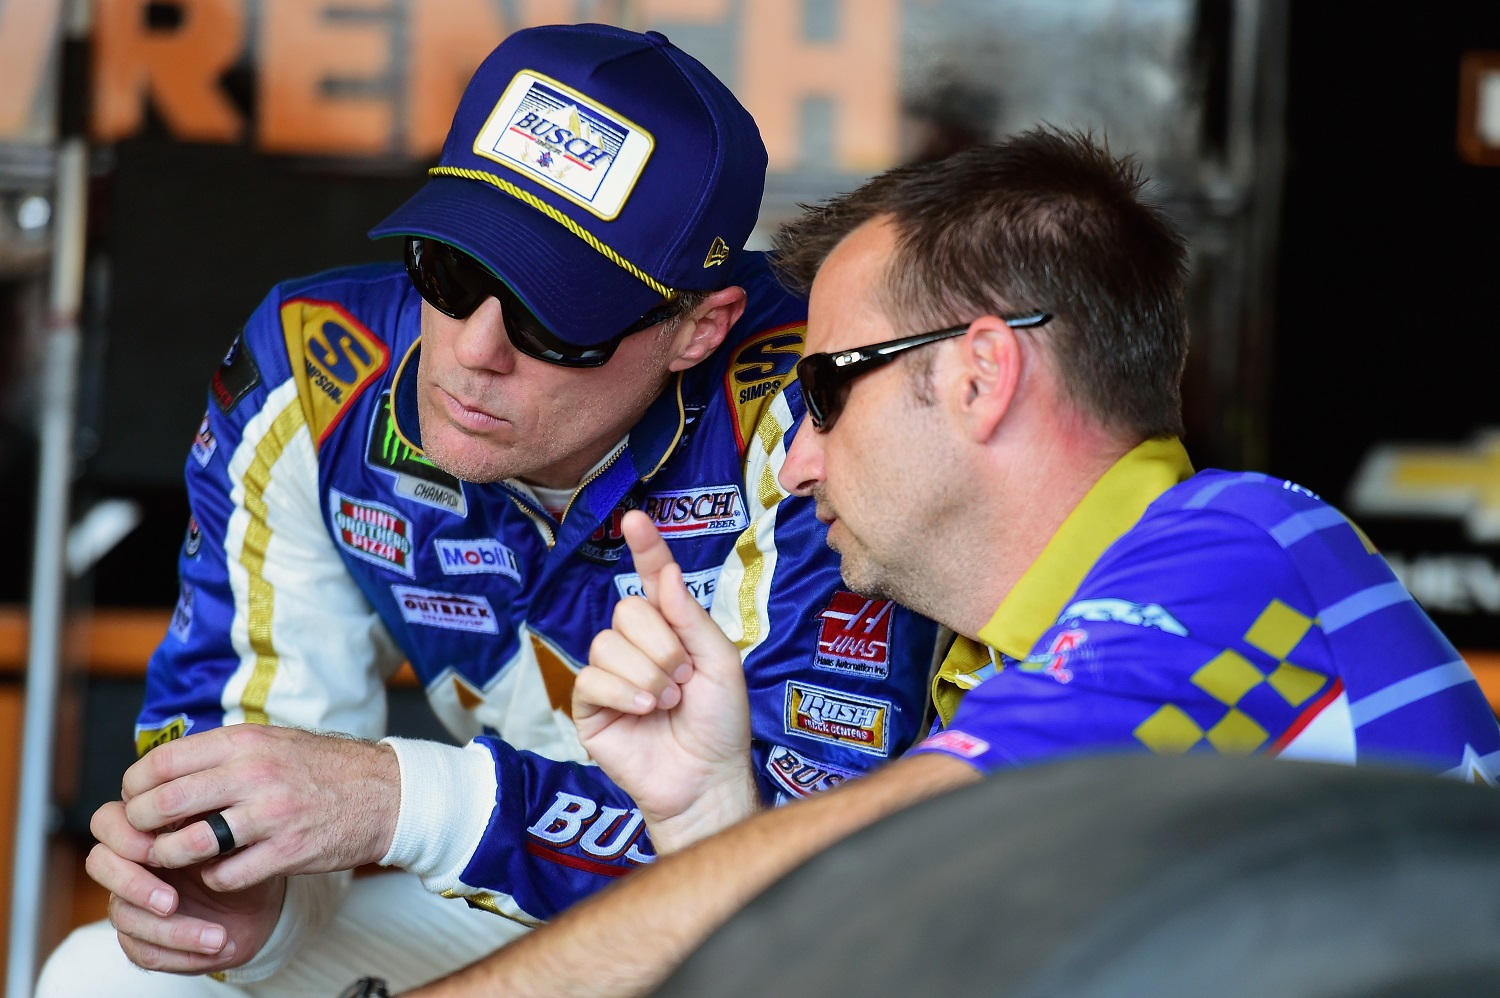 It's Technically a Lug Nut, but Kevin Harvick Is Screwed for NASCAR's Return to Talladega Because of a Simple Mistake - Sportsca